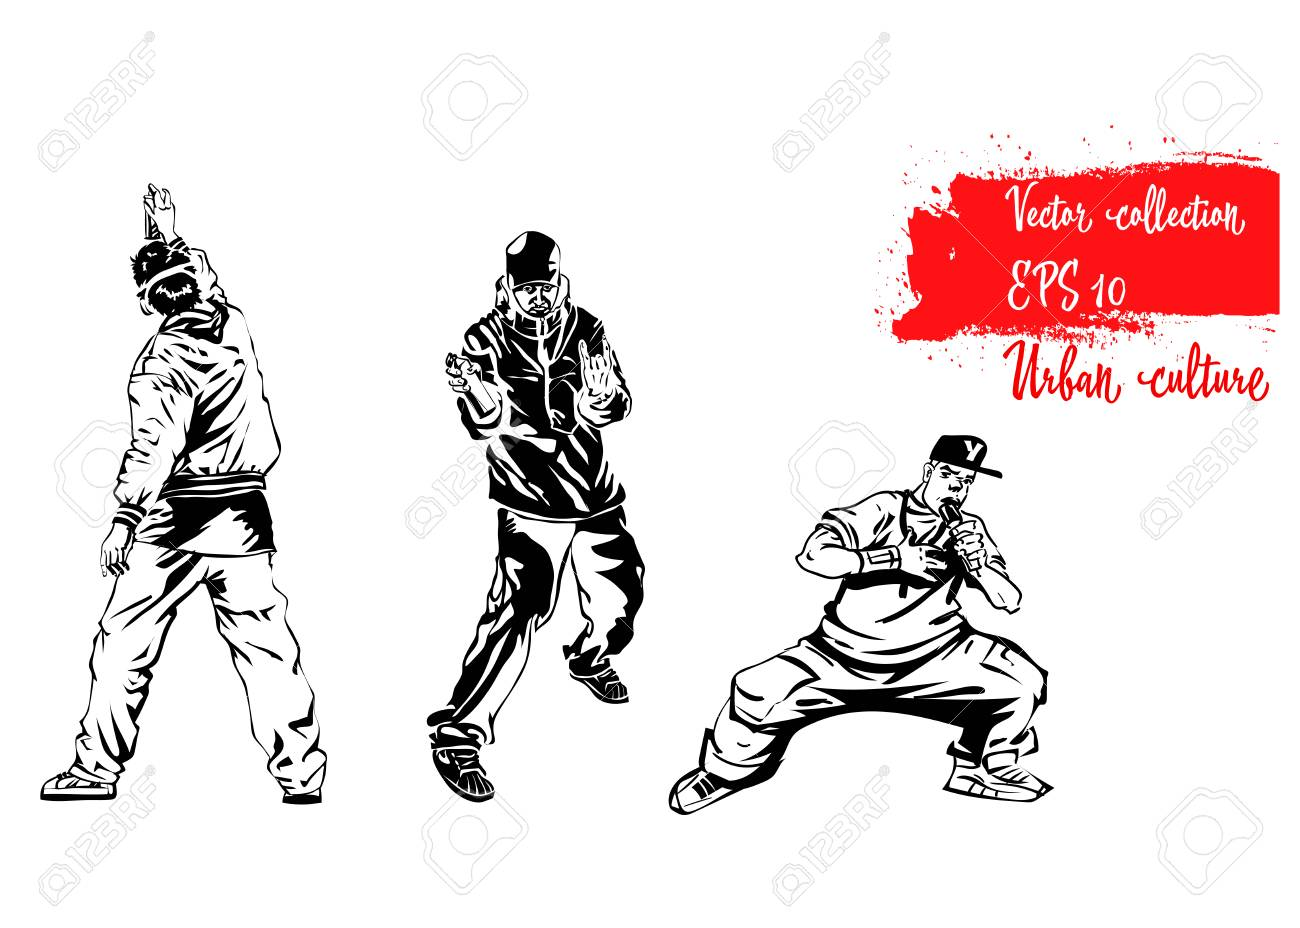 images?q=tbn:ANd9GcQh_l3eQ5xwiPy07kGEXjmjgmBKBRB7H2mRxCGhv1tFWg5c_mWT Trends For Graffiti Artist Vector @bookmarkpages.info